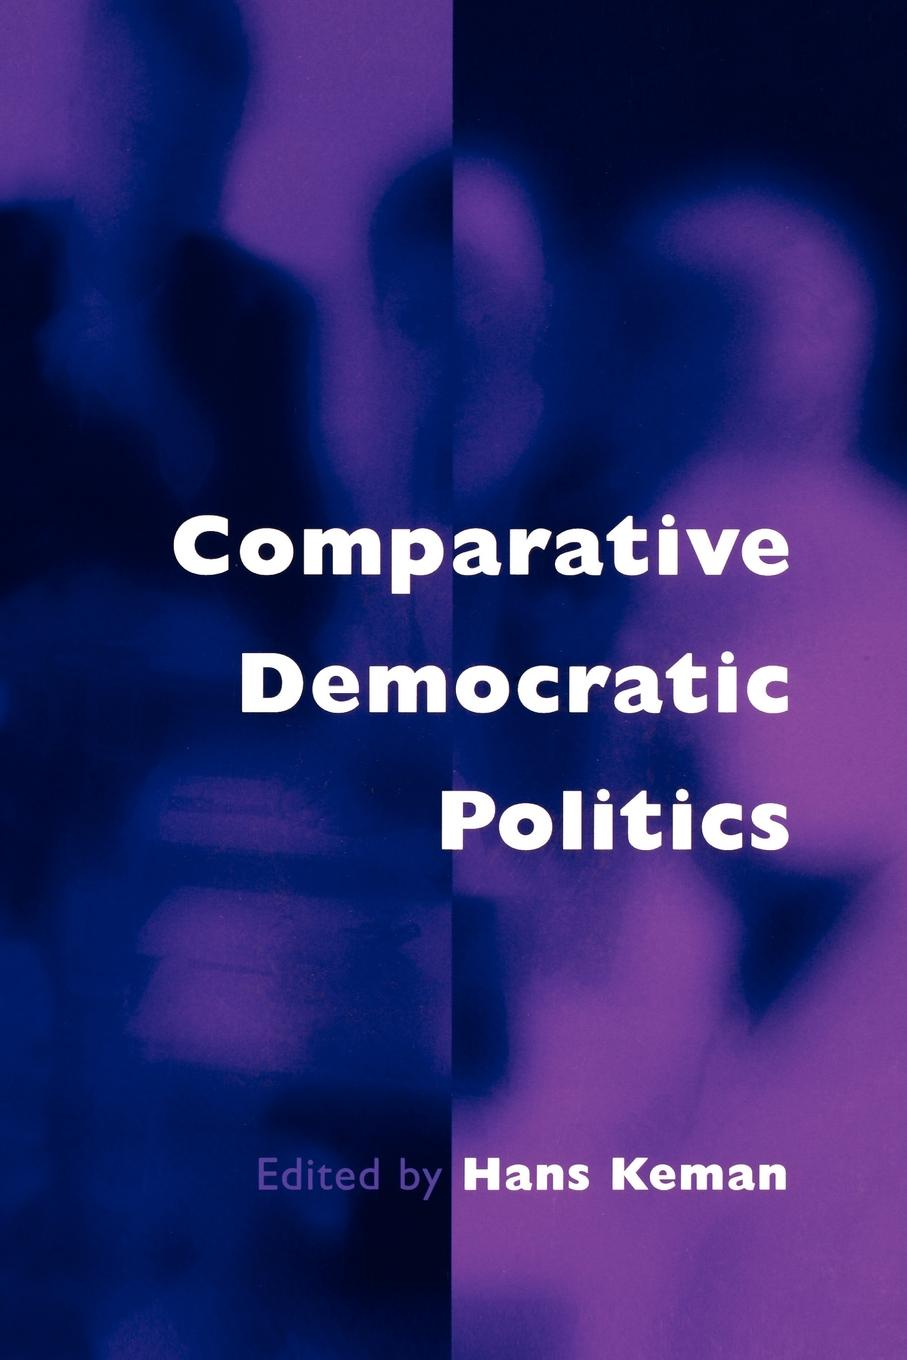 Comparative Democratic Politics. A Guide to Contemporary Theory and Research